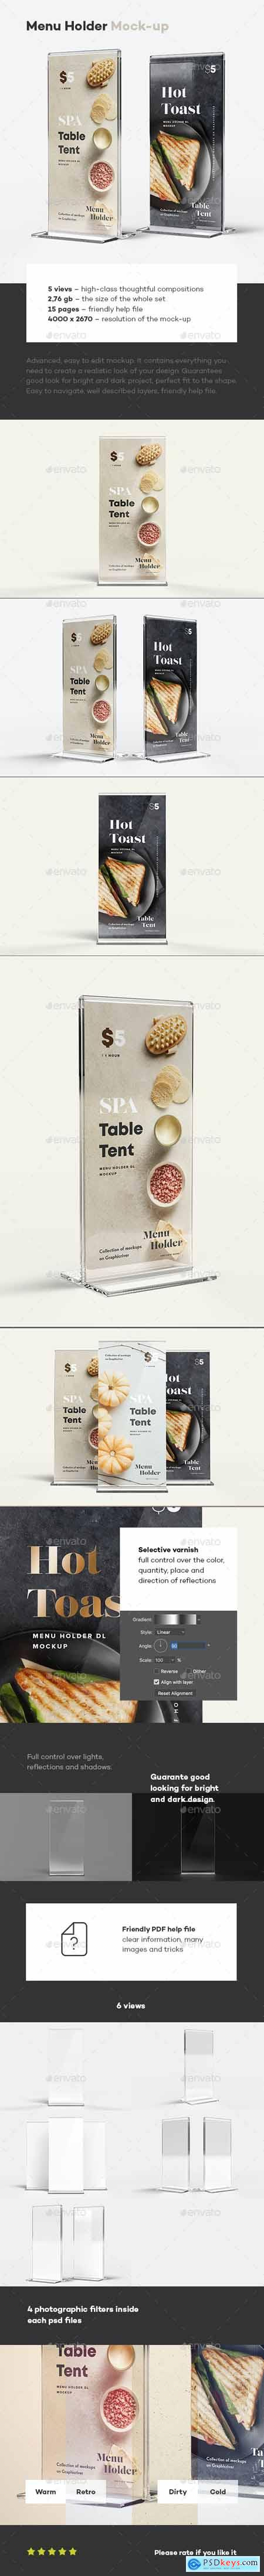 Menu Holder Mock-up 29894381